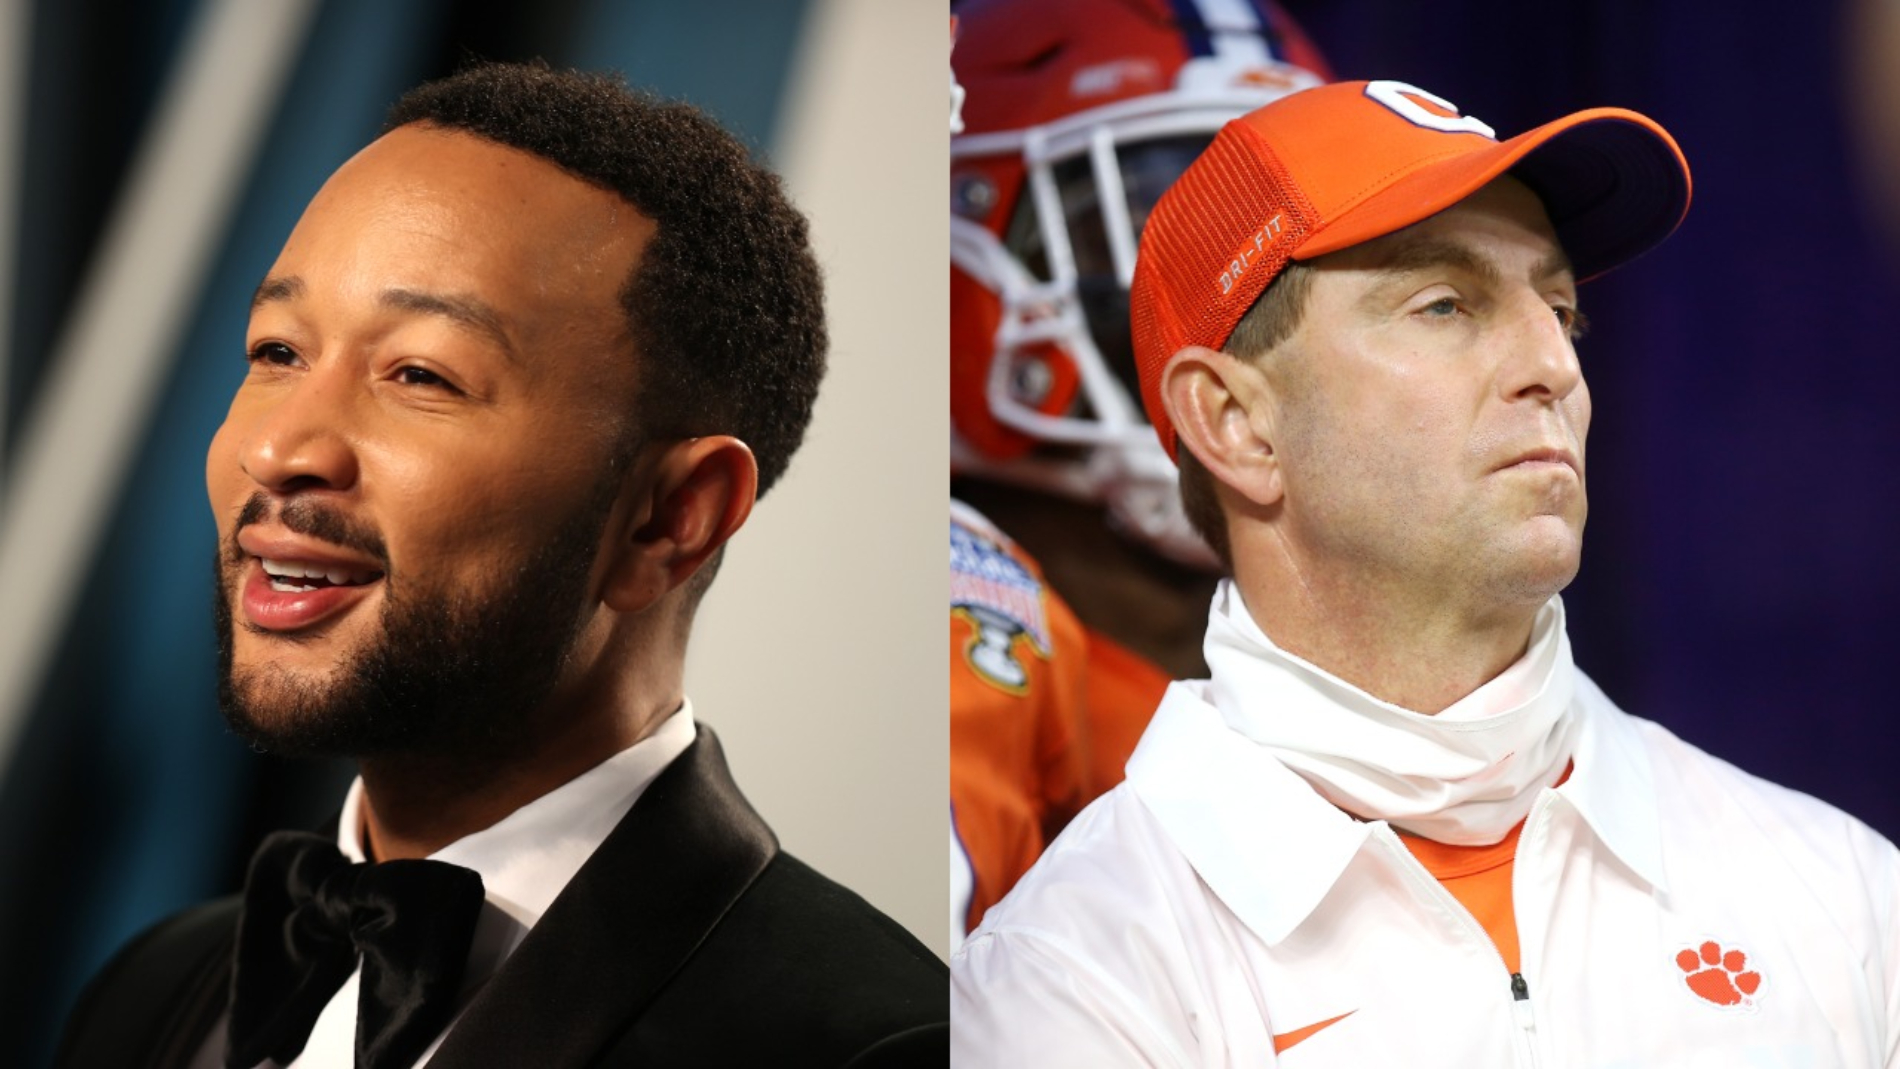 Dabo Swinney and his Clemson Tigers lost to Ohio State in the CFP semifinals, 49-28. Music superstar John Legend then took a shot at him.